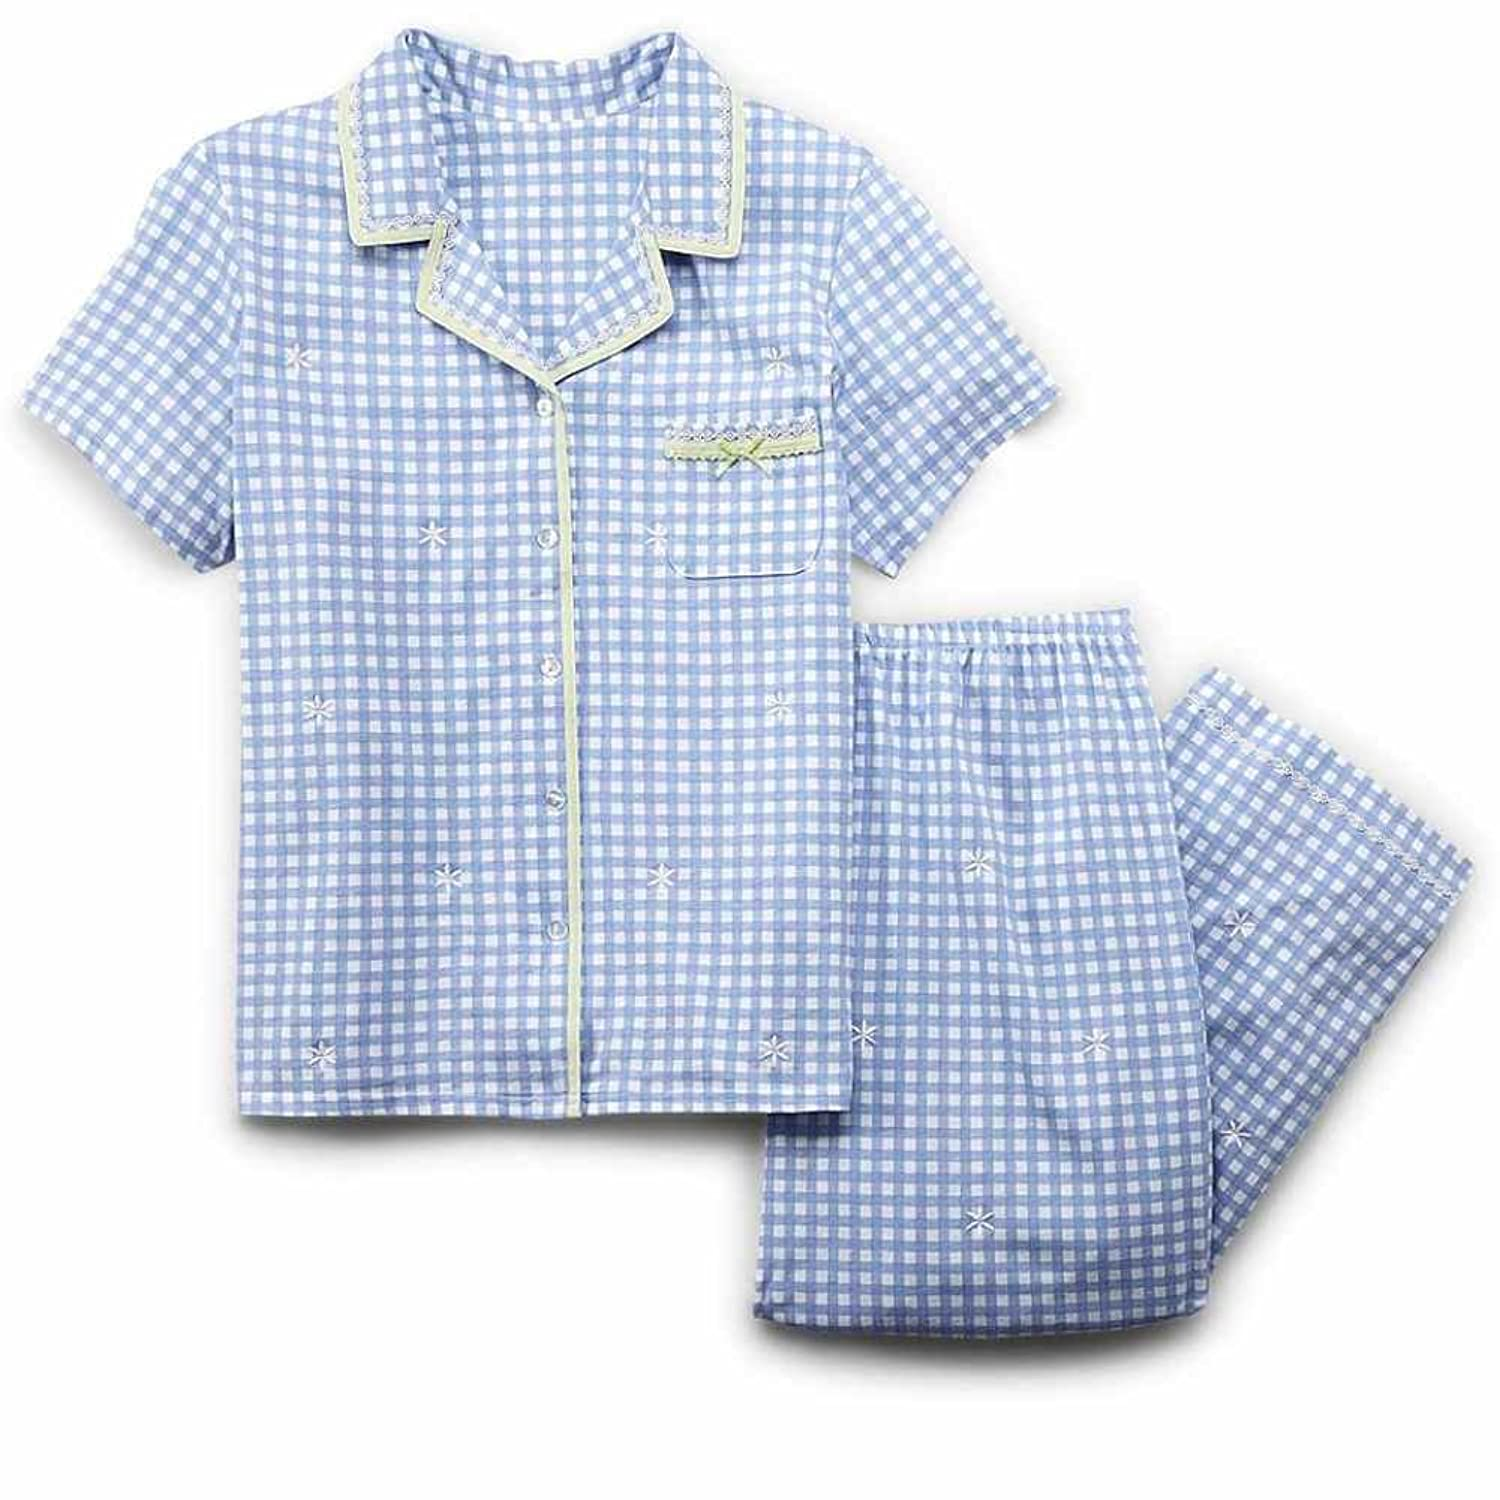 цена Laura Scott Womens Blue Check Pajamas Lightweight Short Sleeve Pajama Set онлайн в 2017 году